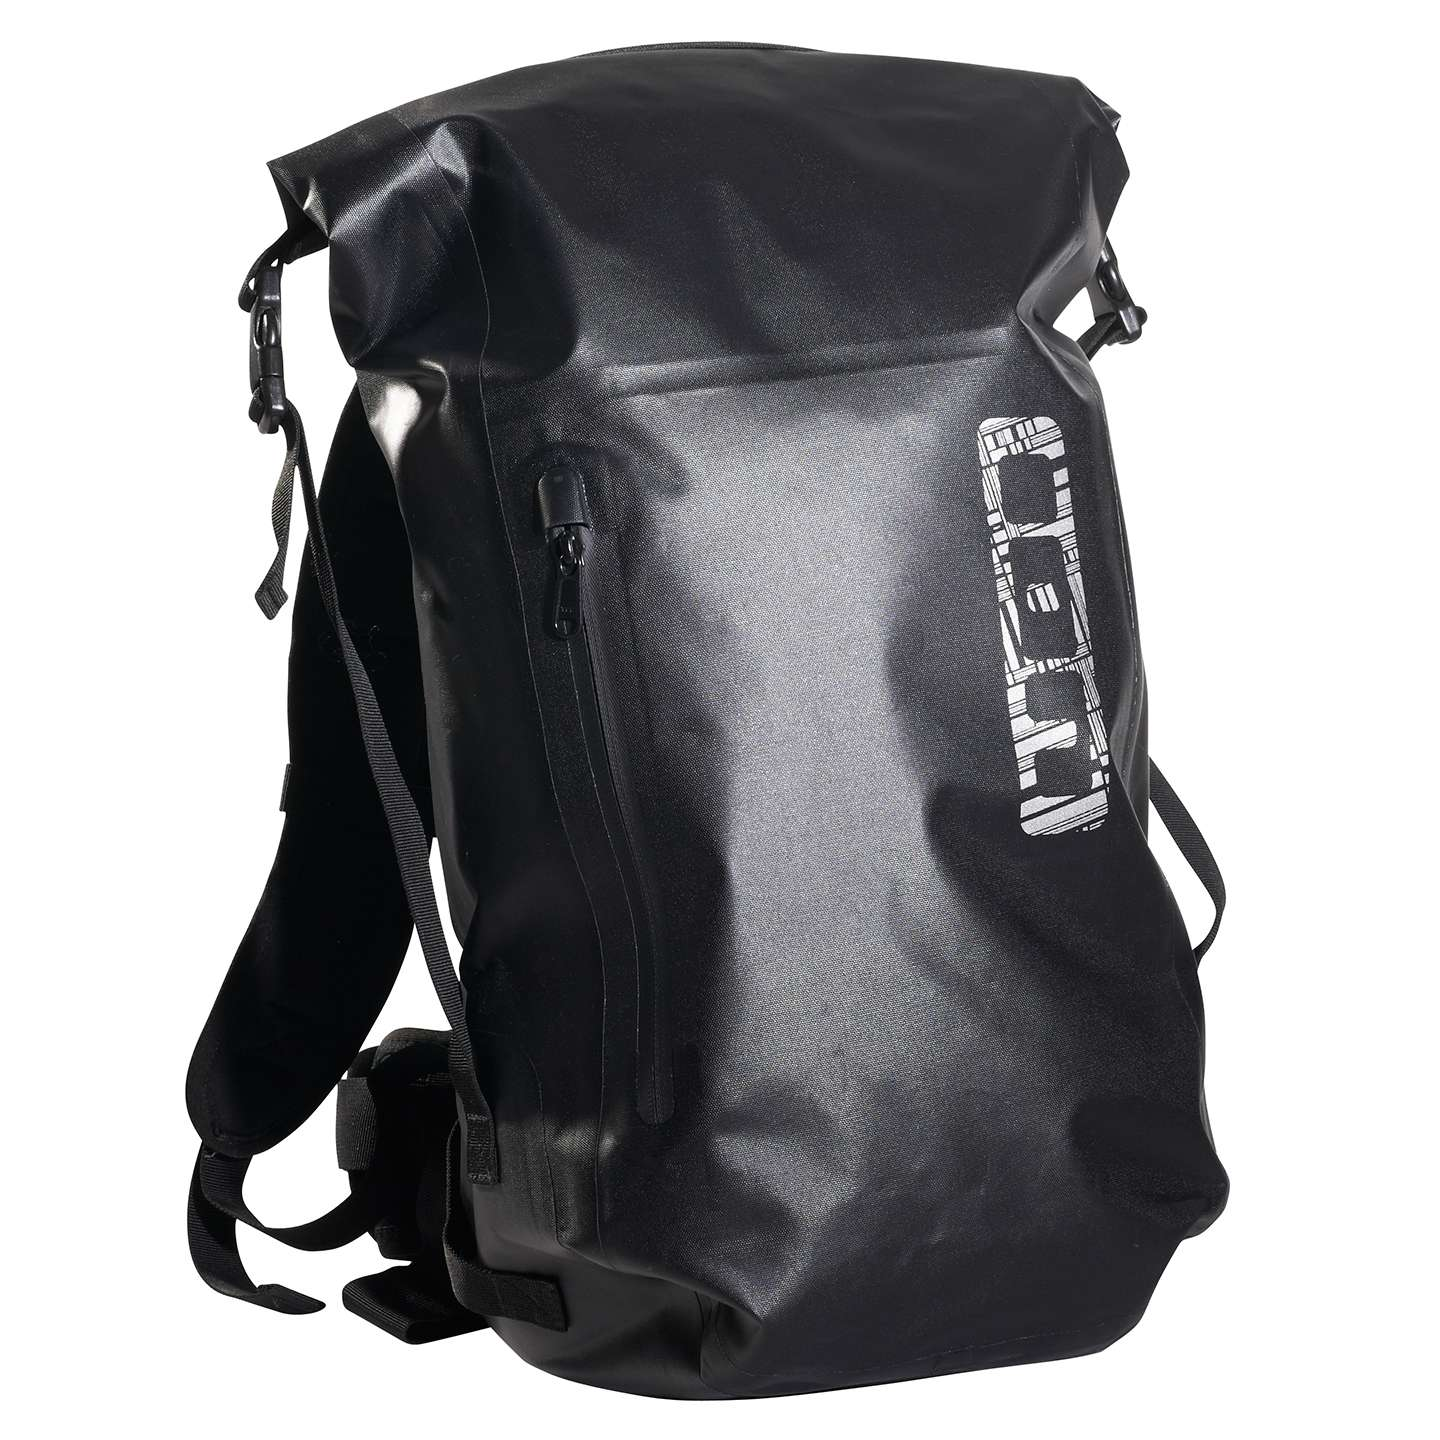 Waterproof Surf Backpack - Crazy Backpacks